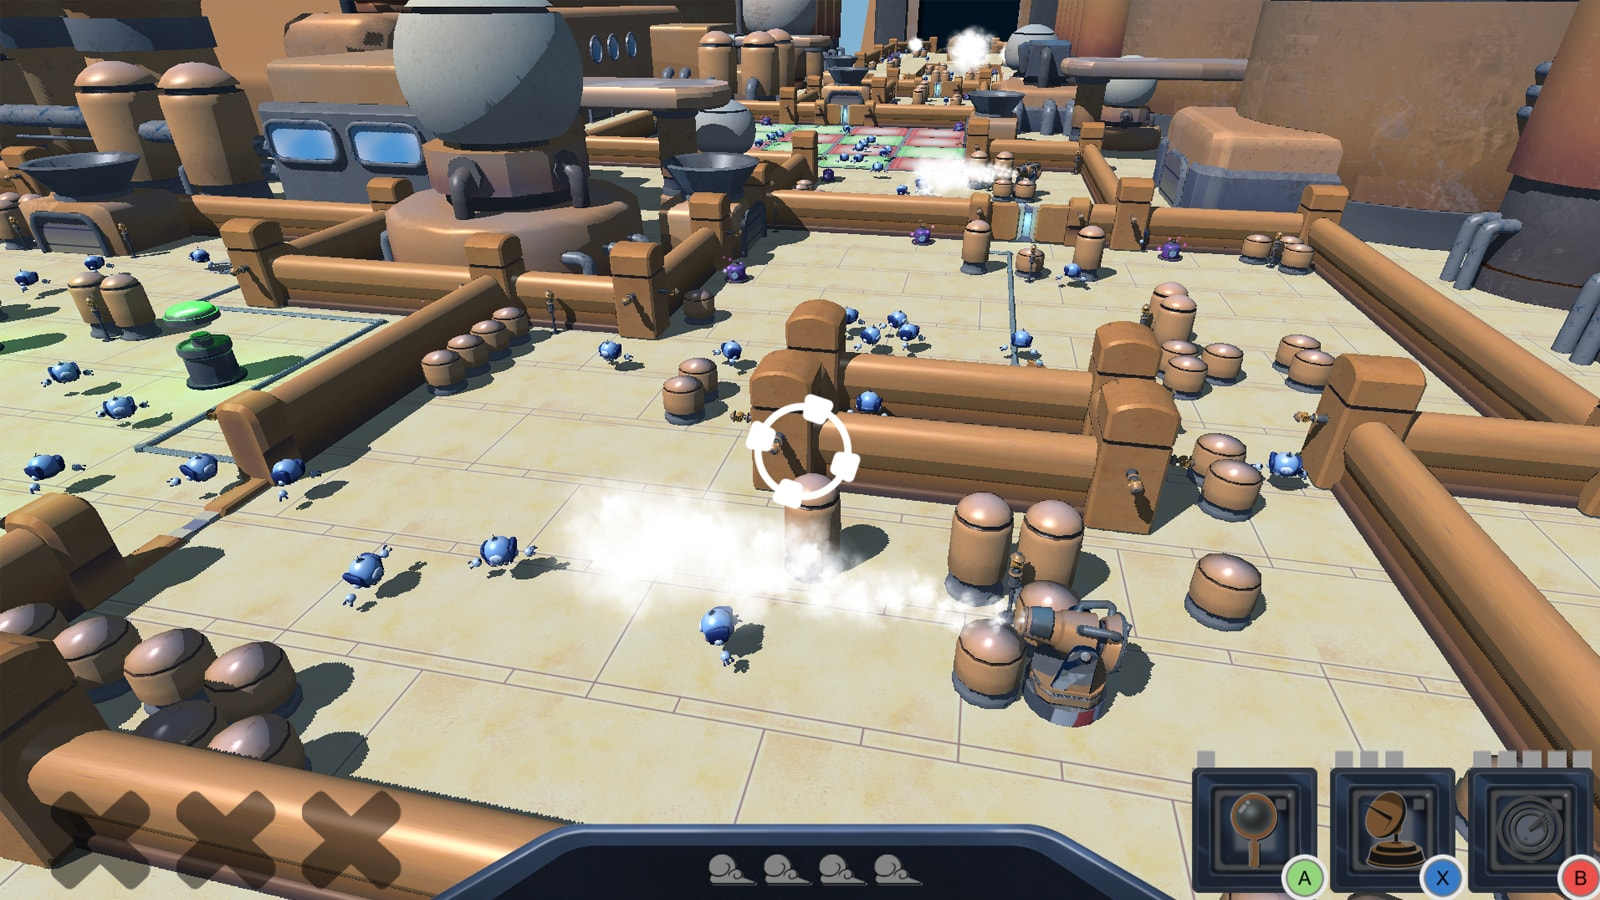 The airship floor covered in floating blue robot workers.